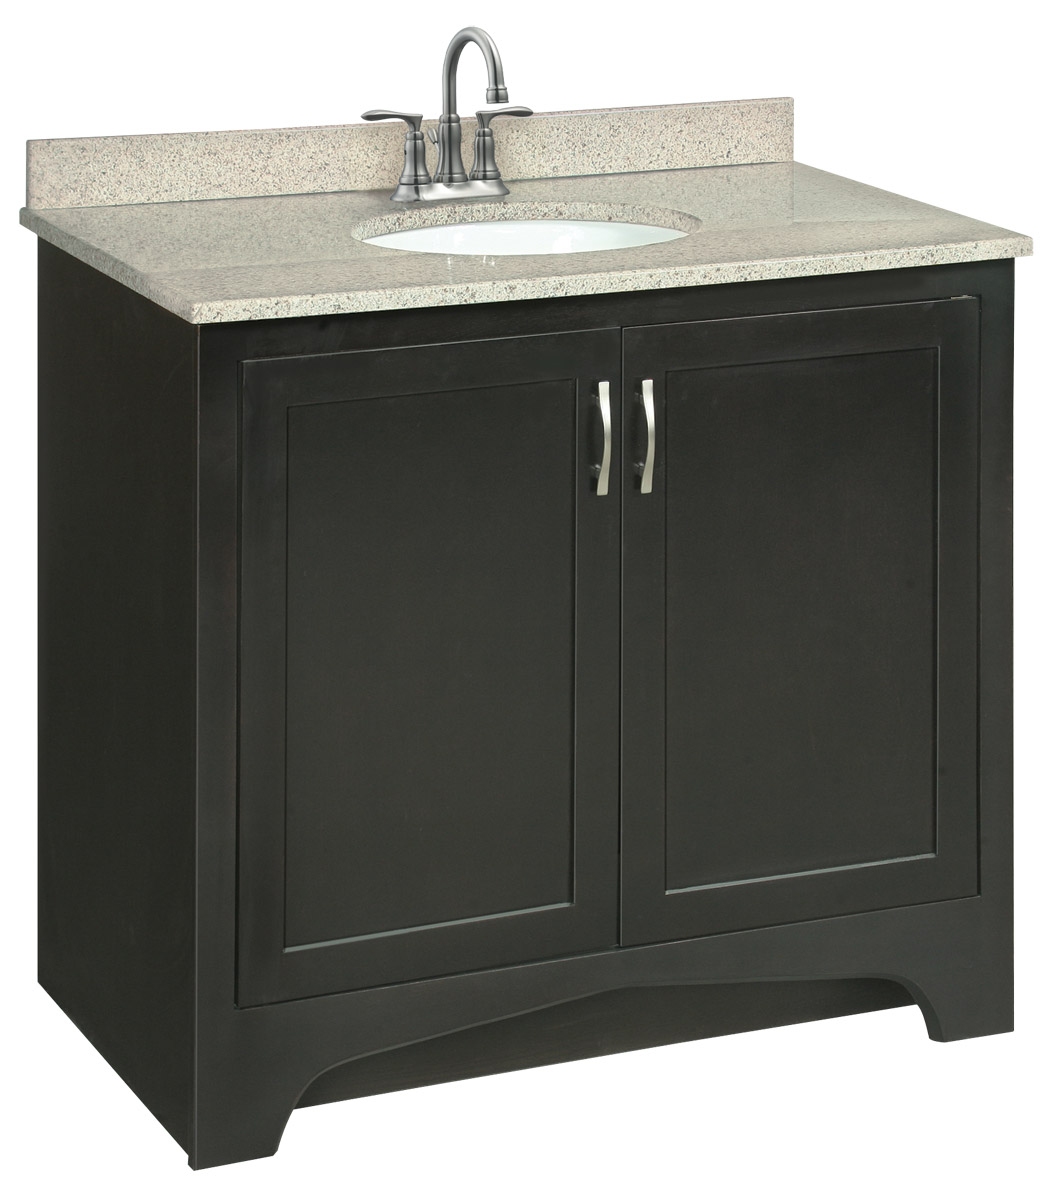 Design House 539601 Ventura Espresso Vanity Cabinet with 2-Doors 36-Inches by 33.5-Inches